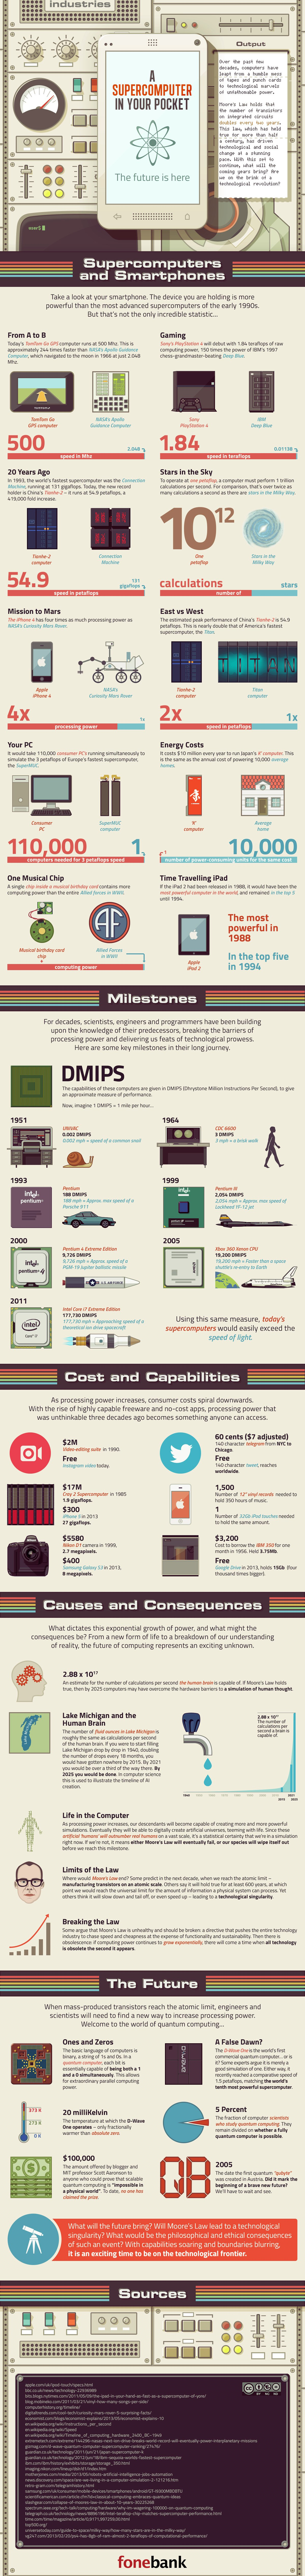 The Supercomputer in Your Pocket